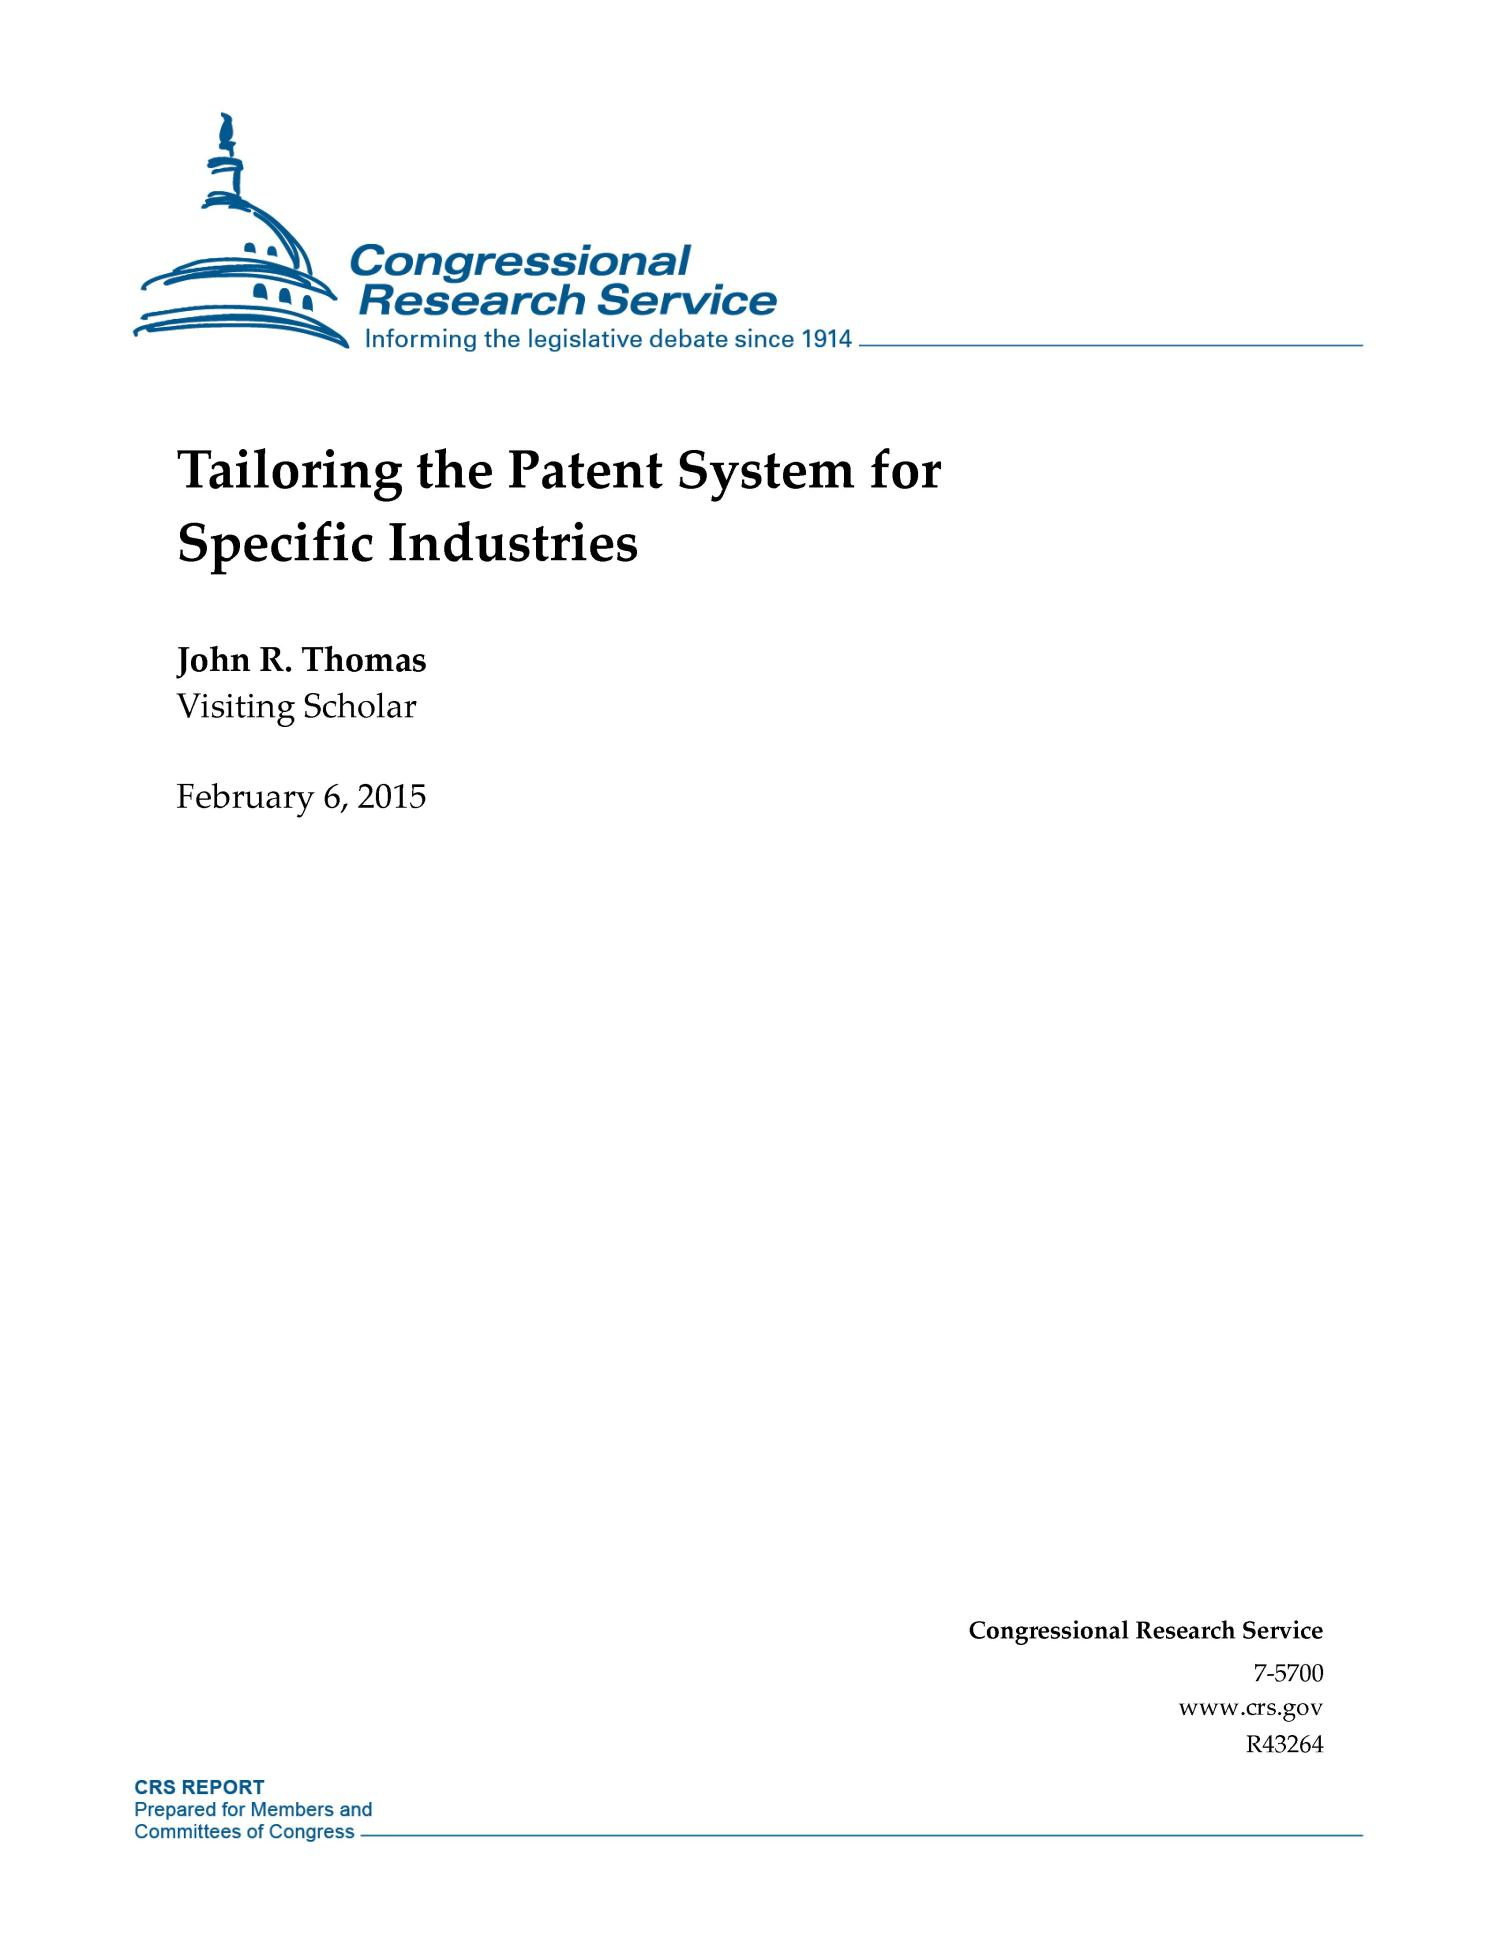 Tailoring the Patent System for Specific Industries                                                                                                      [Sequence #]: 1 of 16